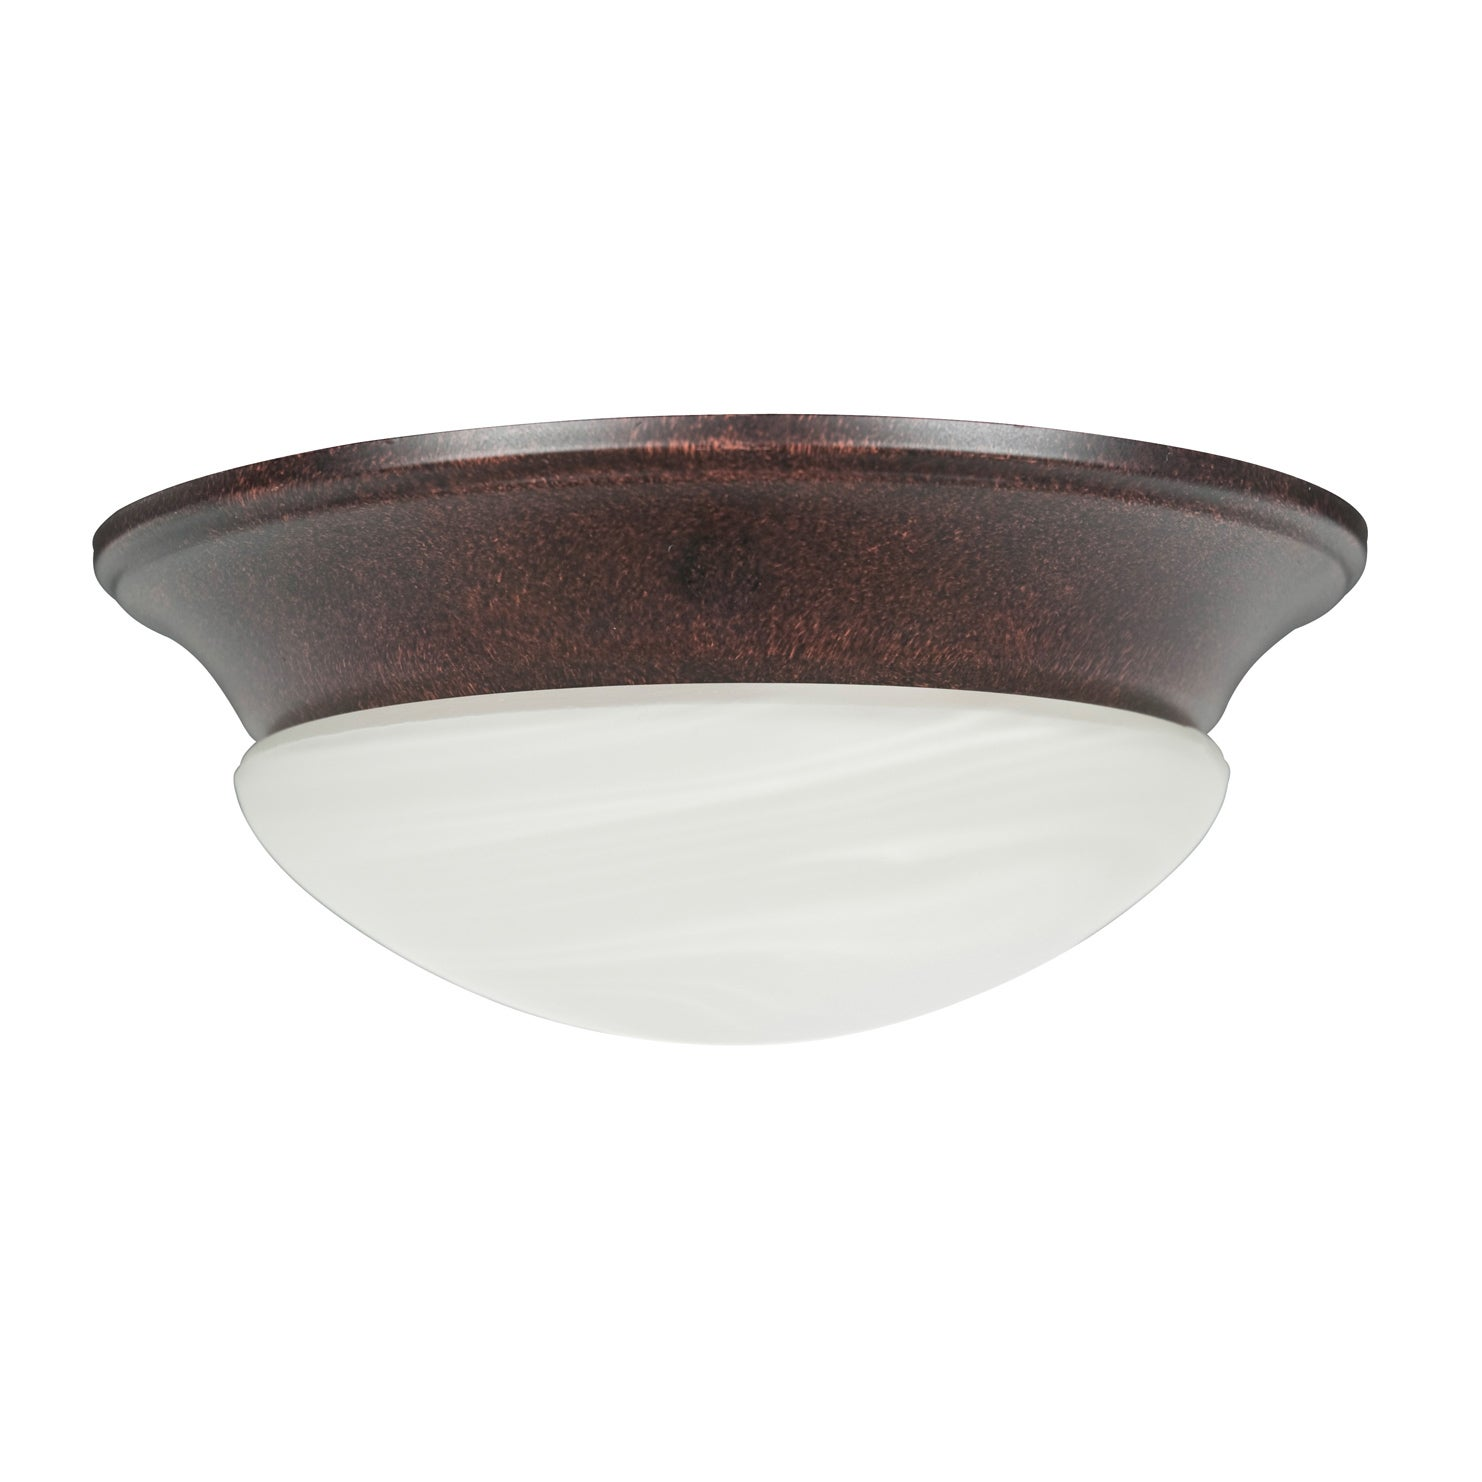 Overstock.com Rubbed Bronze Two-light Ceiling Fan Light Kit at Sears.com